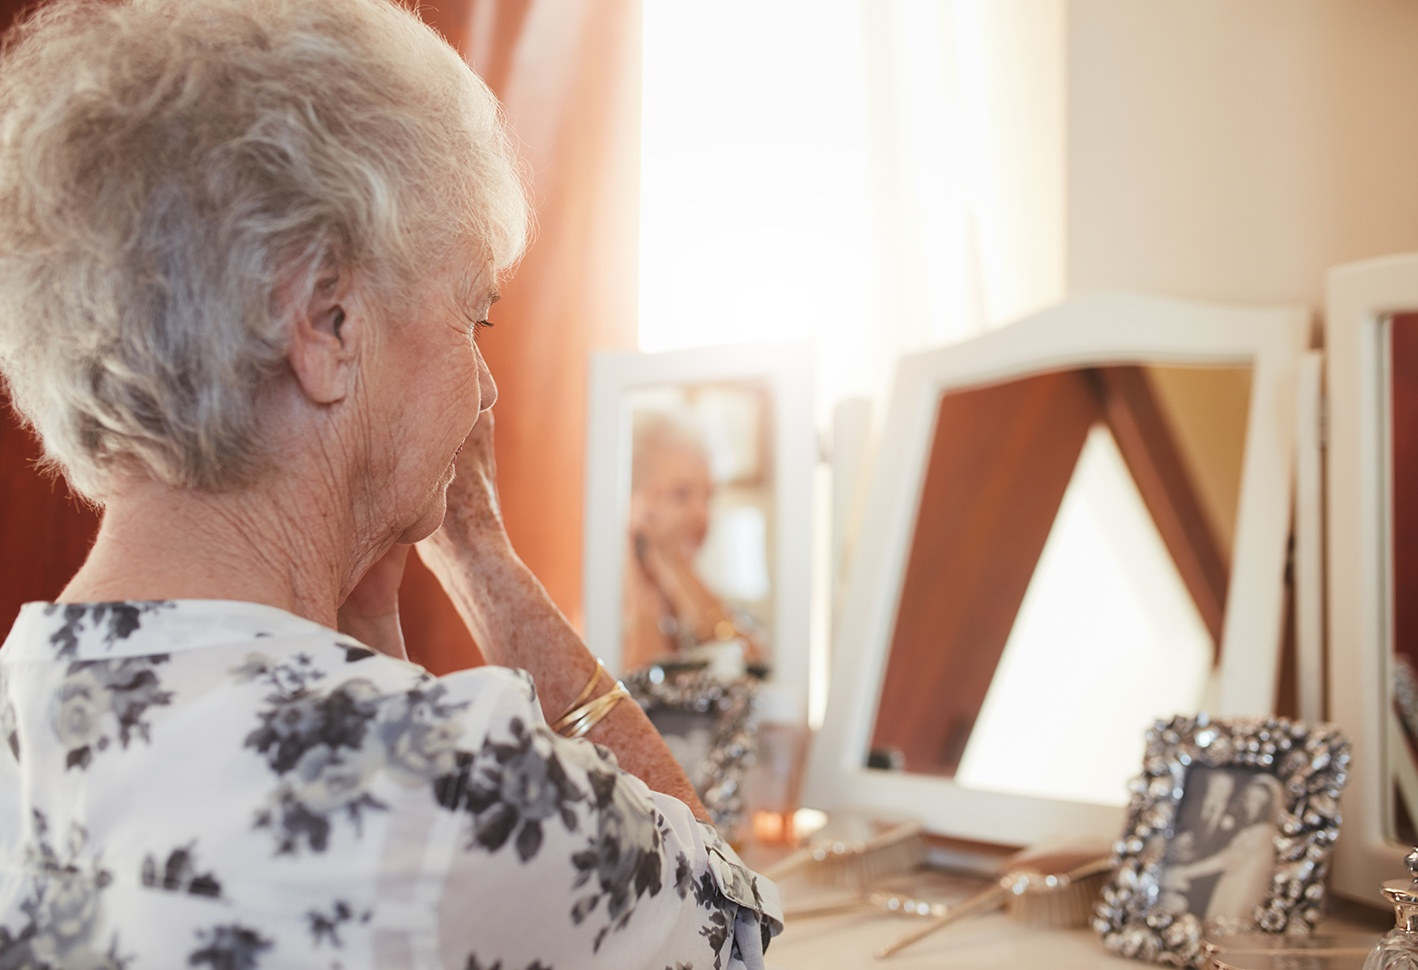 Home for the Holidays? How to Check on Older Parents